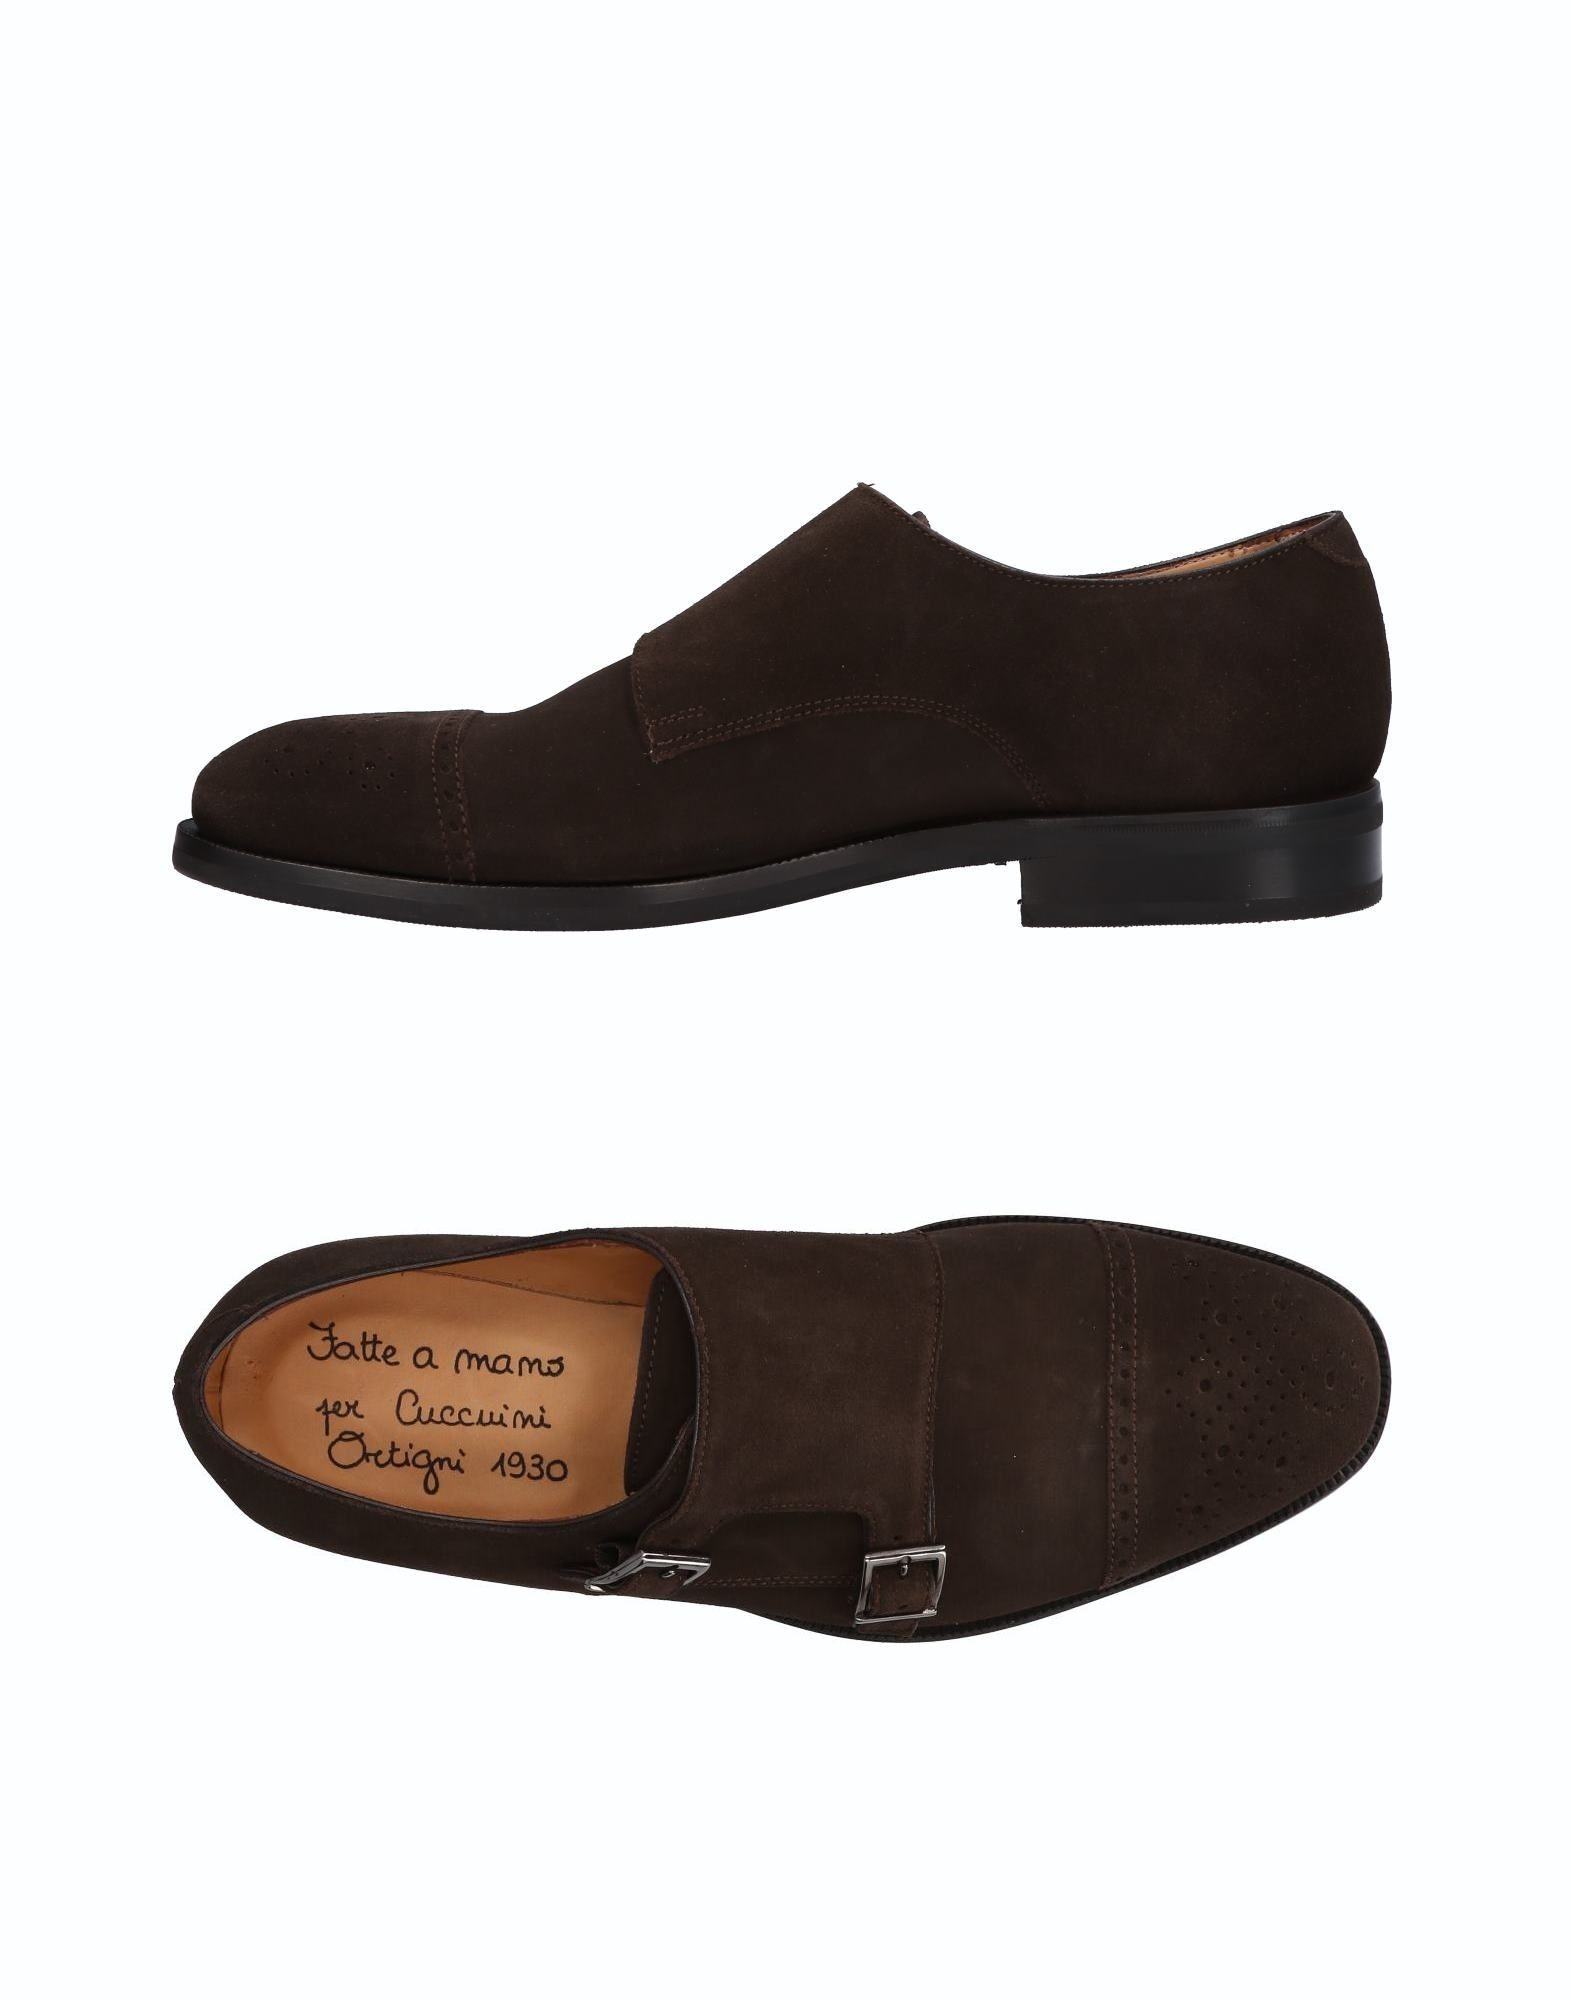 ORTIGNI Loafers in Dark Brown